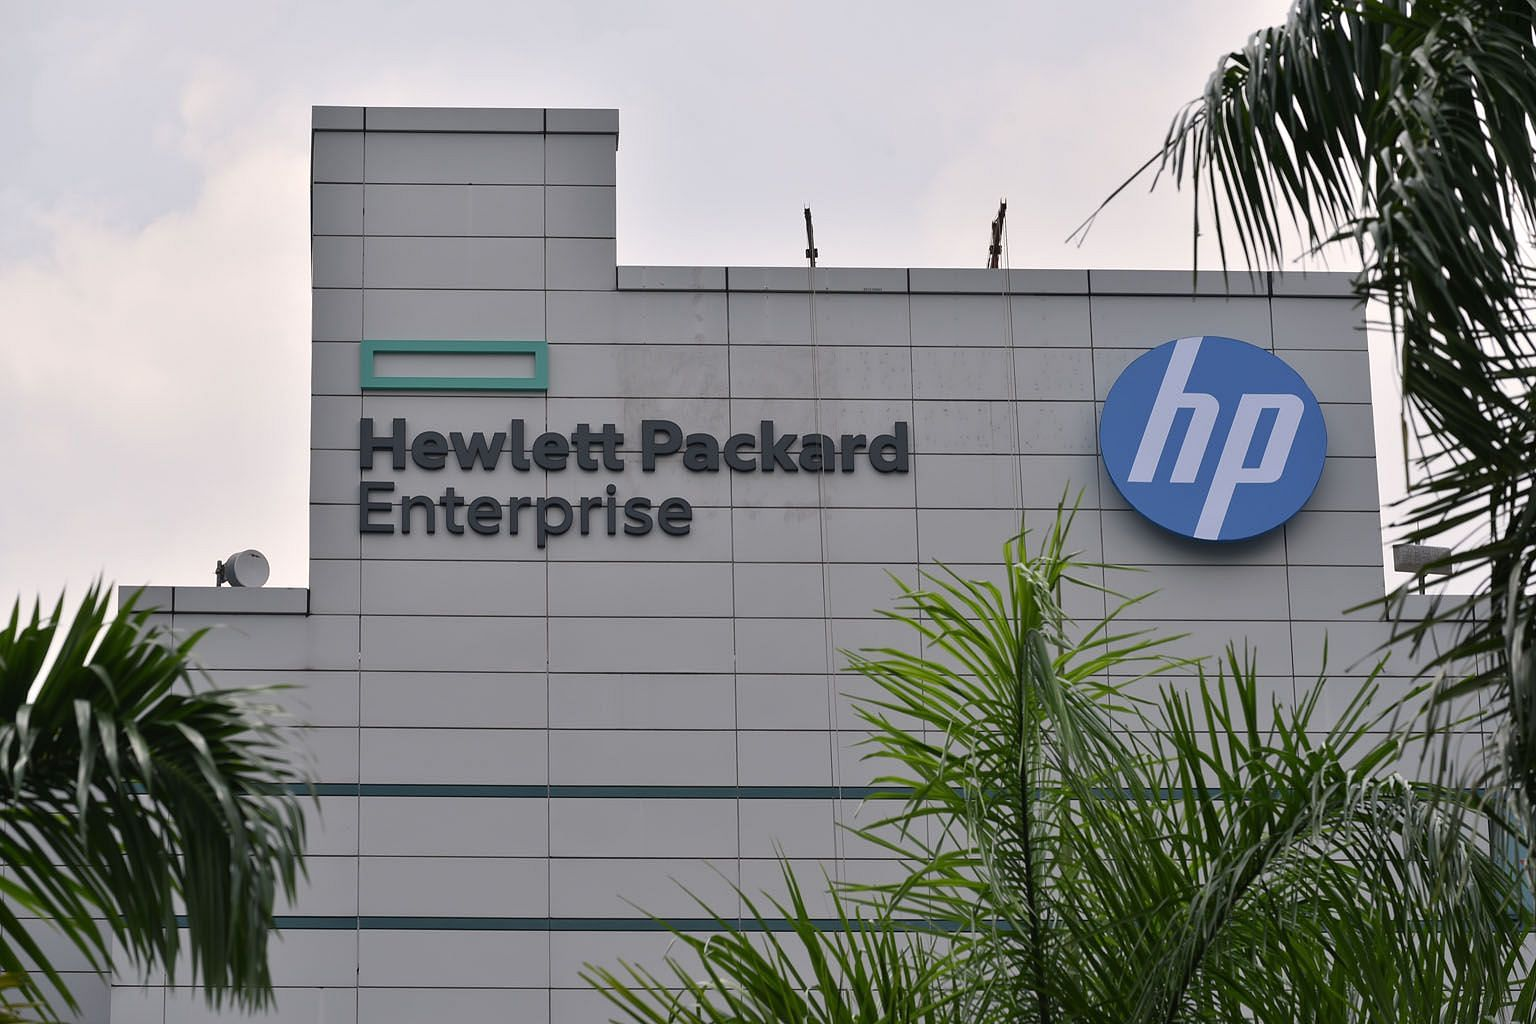 Hewlett Packard Enterprise, which has its regional headquarters in Singapore, said it was putting in place a plan to cut costs, with a goal of US$1 billion (S$1.4 billion) in savings by the end of fiscal 2022. It has about 1,300 staff here. ST FILE P